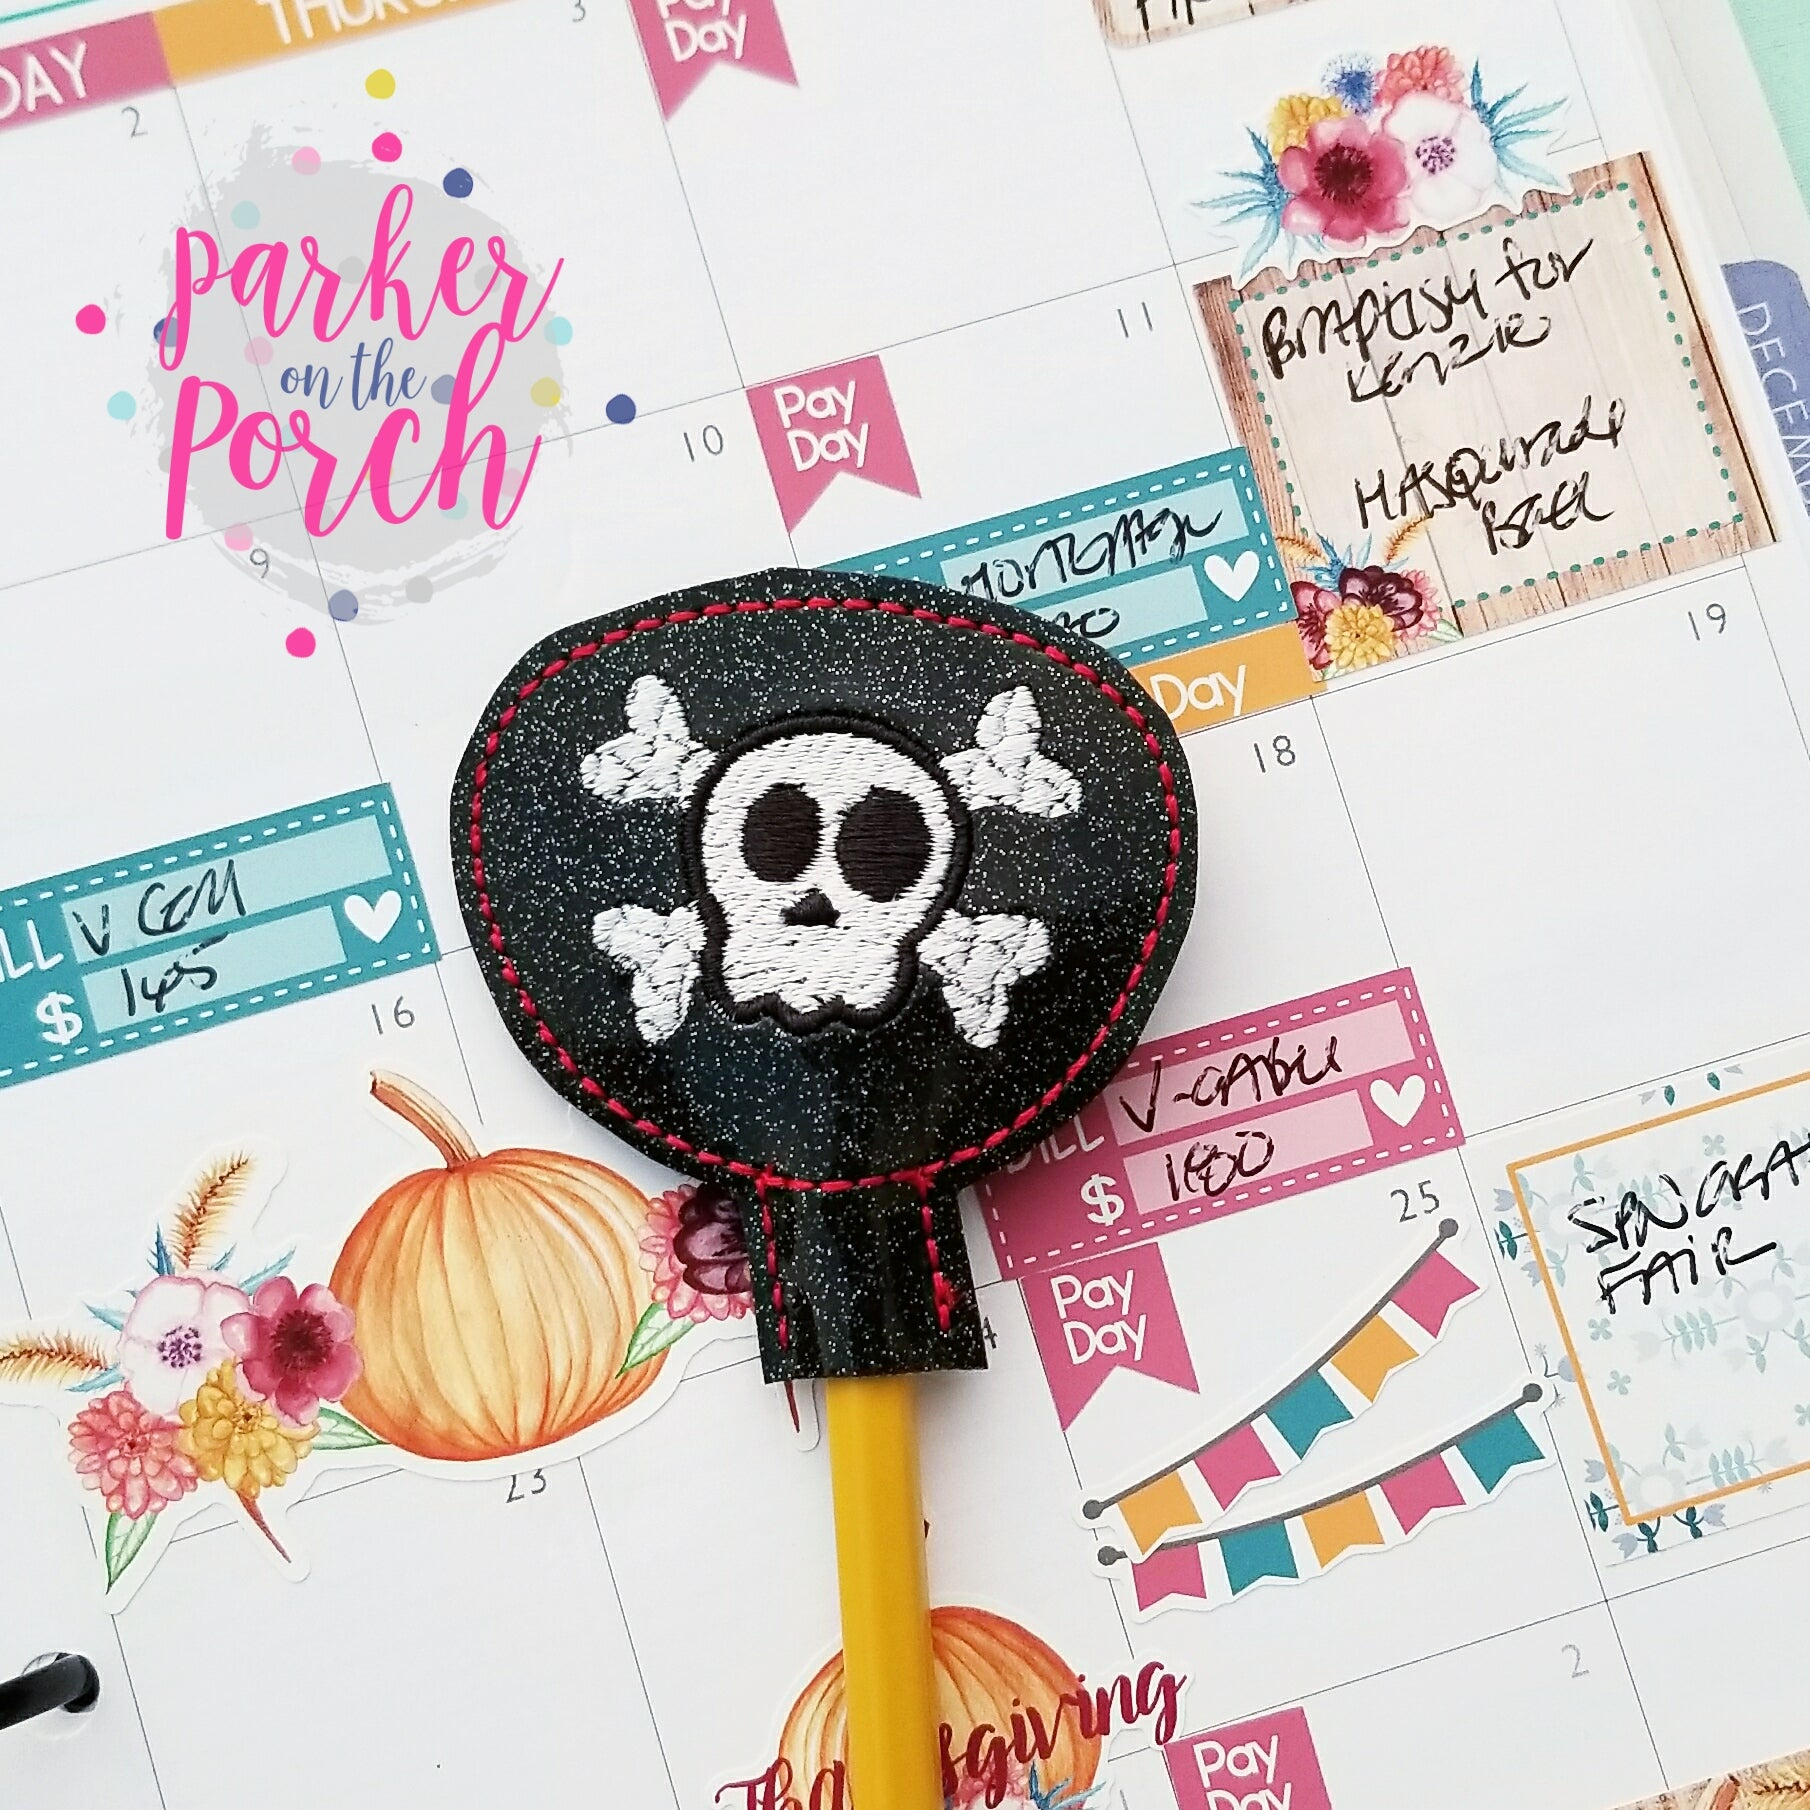 Digital Download- Pirate Eye Patch Pencil Topper - in the hoop machine embroidery ITH pattern